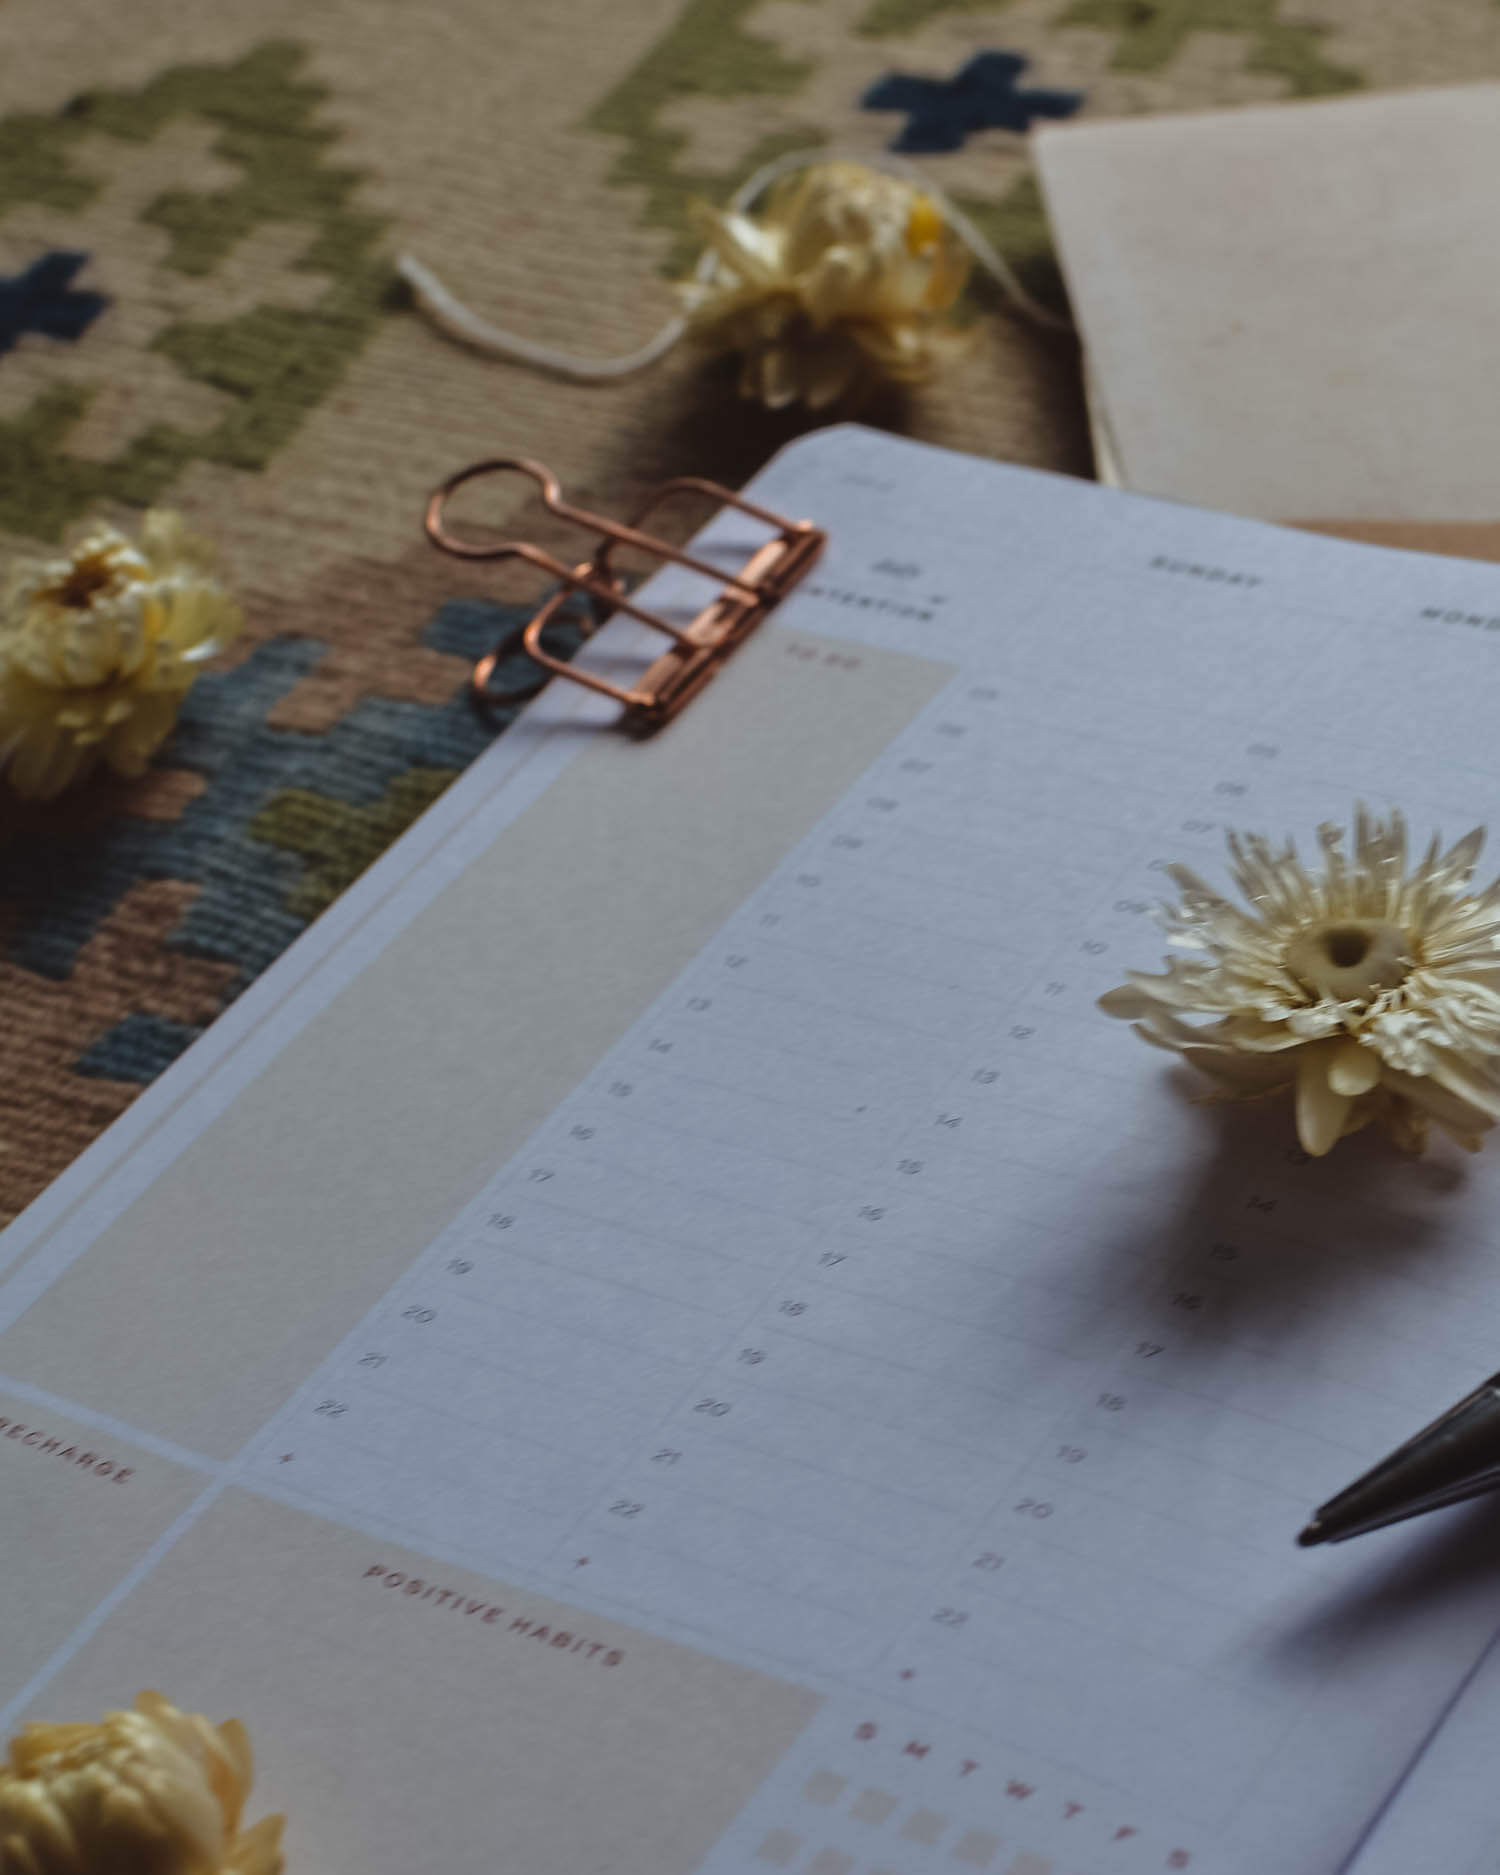 Diary planner with dried flowers